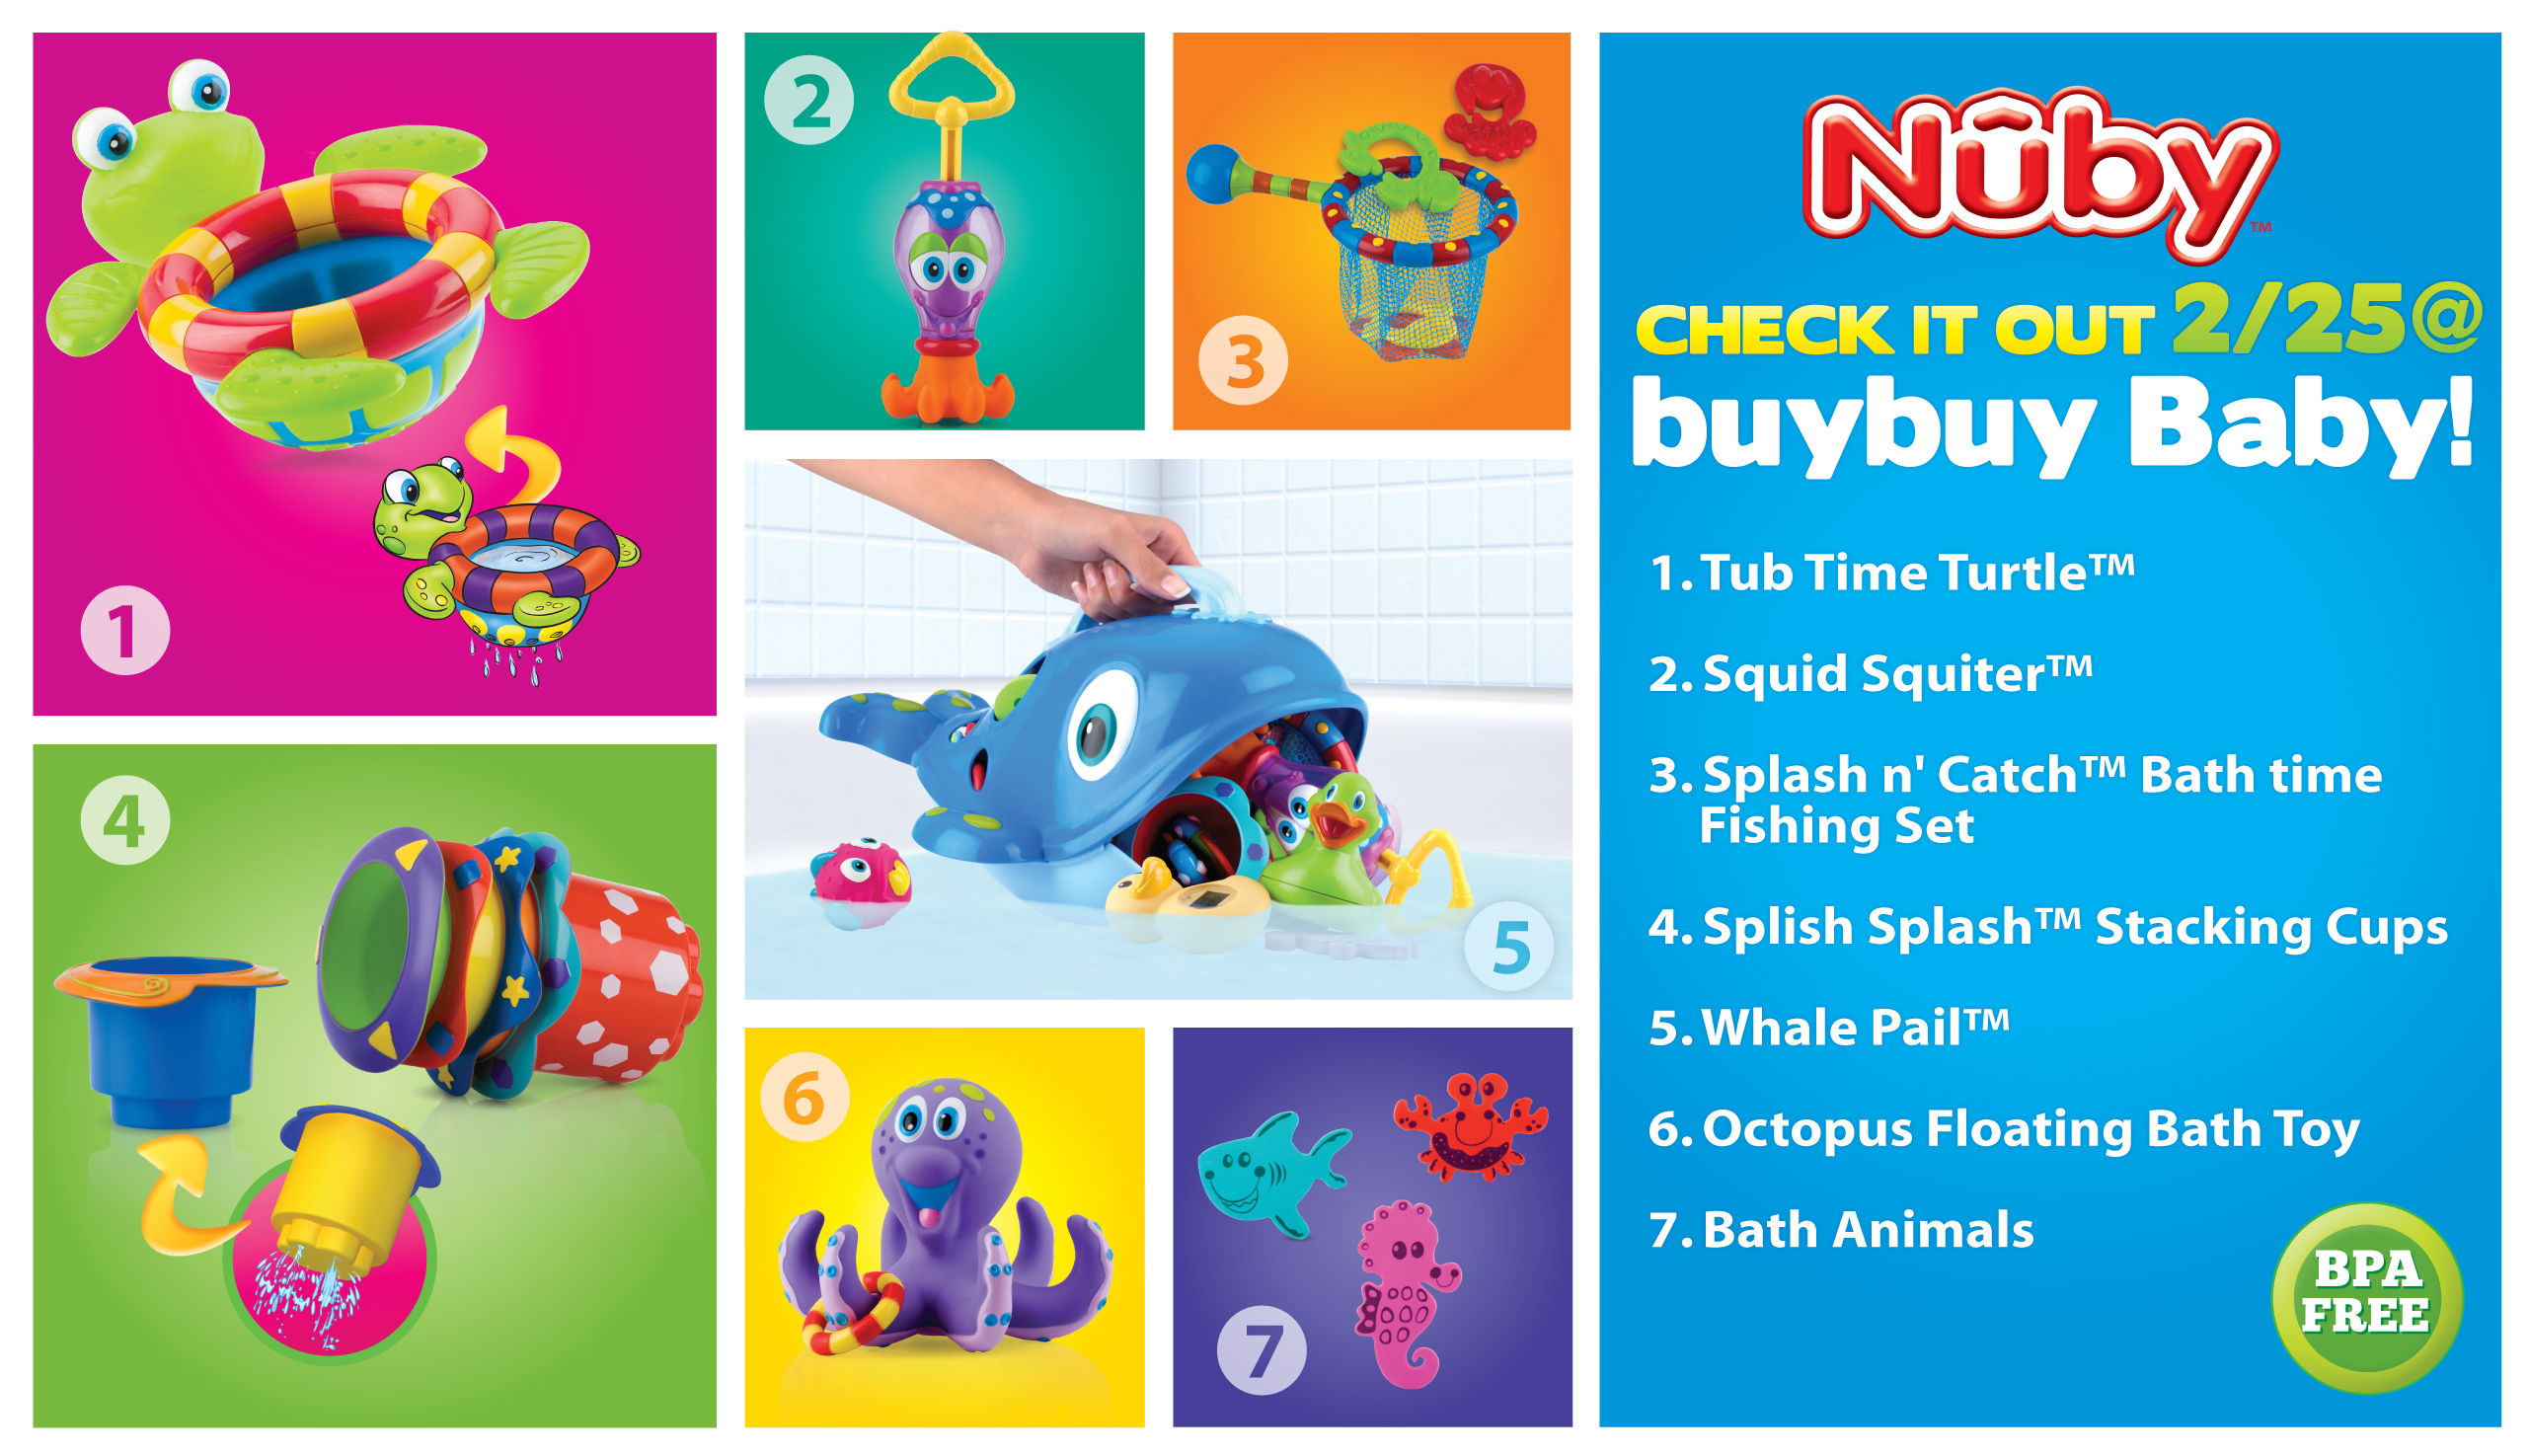 Nuby bathtime buybuybaby 2 Win Nuby baby products!